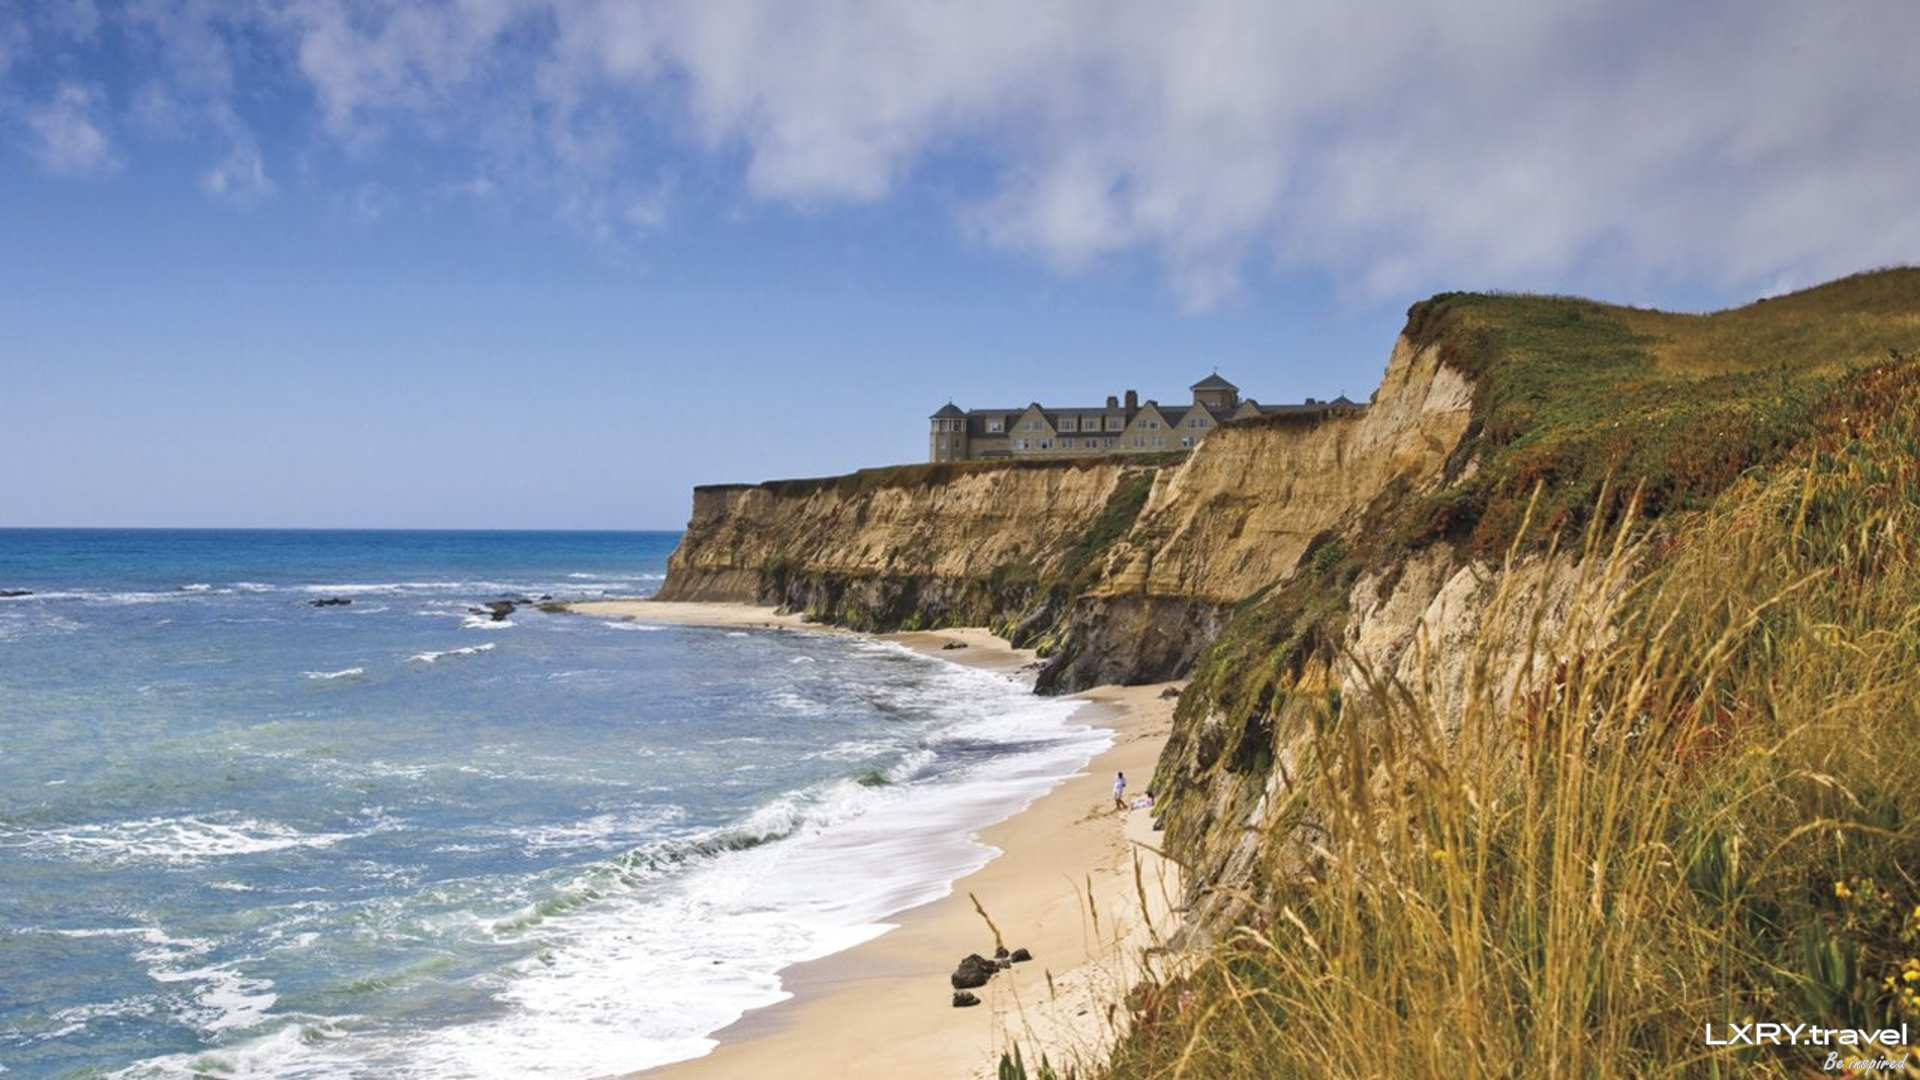 The Ritz-Carlton, Half Moon Bay 21/50